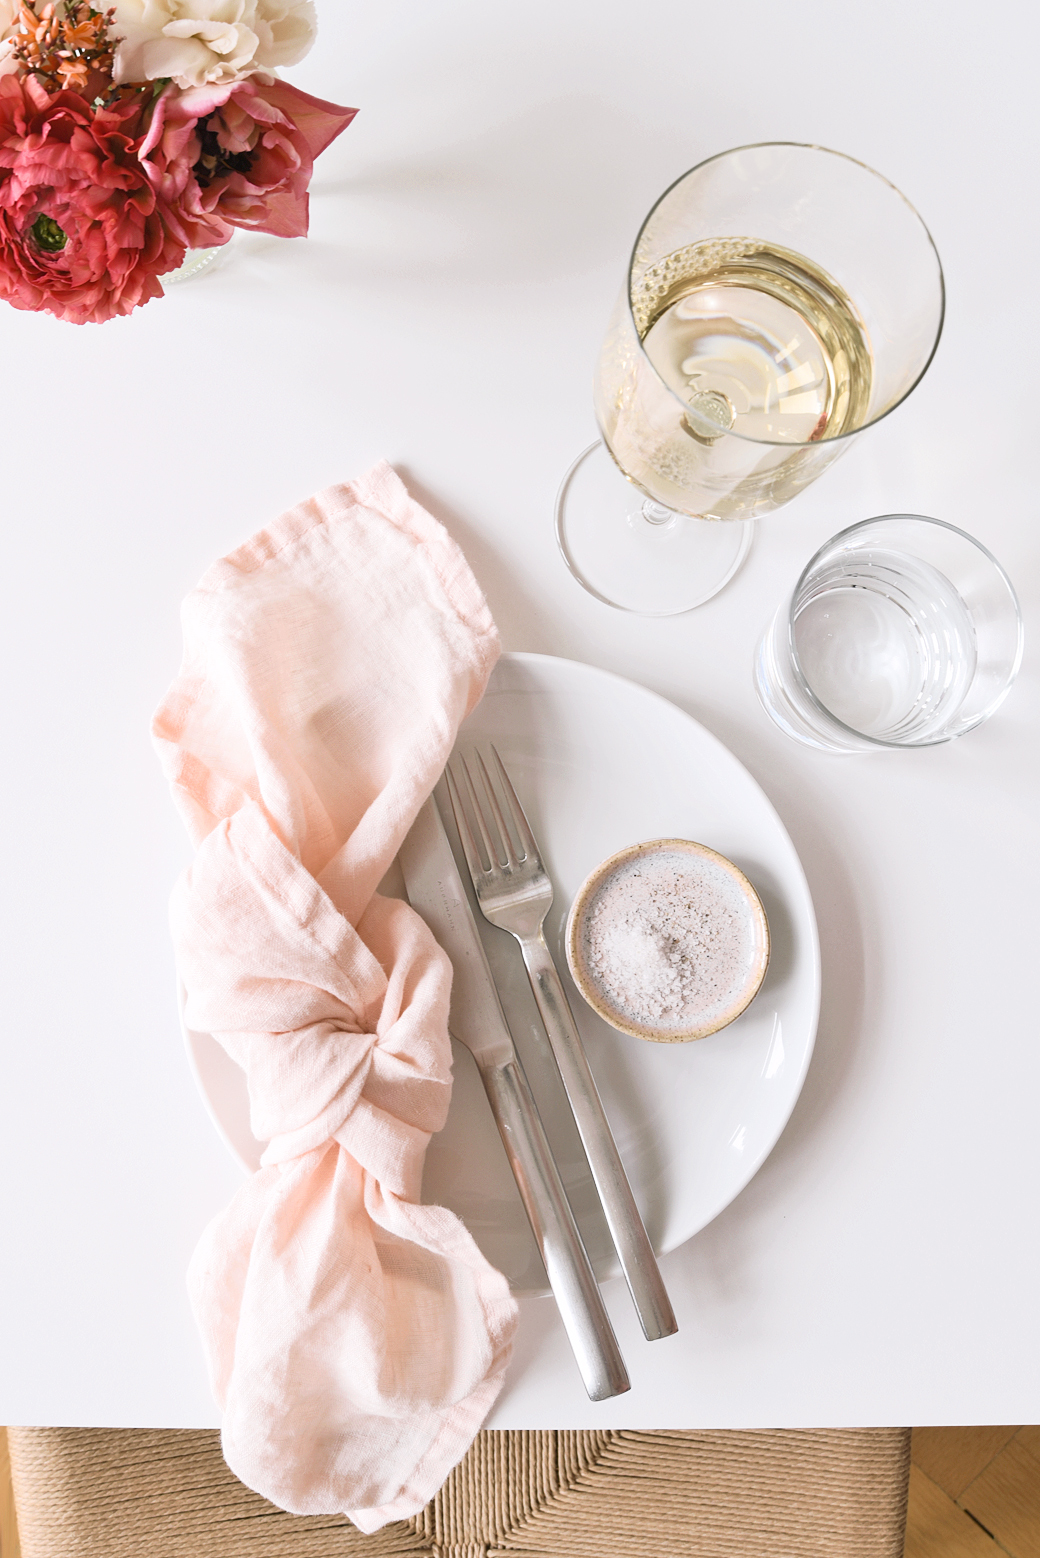 March Dinner Party Inspiration With Pale Salmon + Fresh Flowers